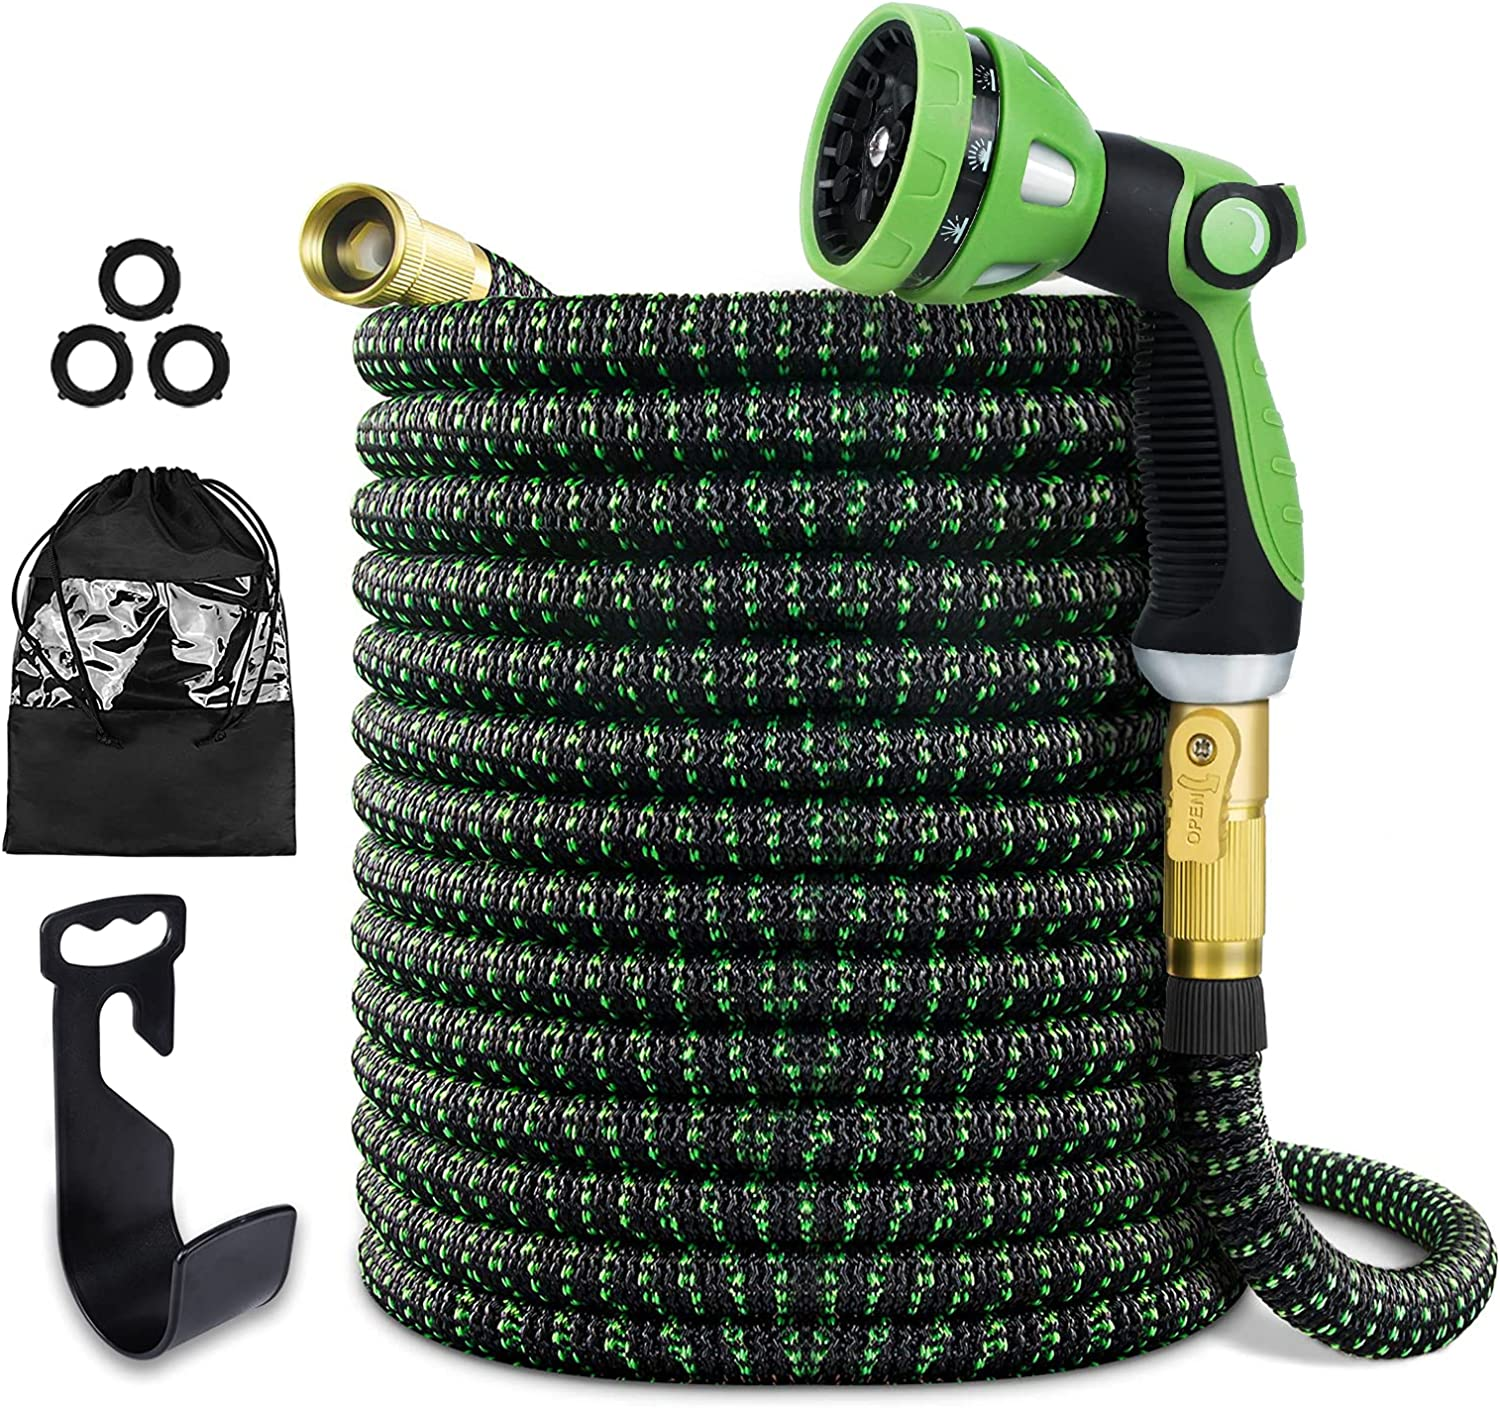 Augtarlion 50 ft Expandable Garden Hose with 10 Function Sprayer, Leak-proof Lightweight Expanding Garden Water Hose with 100% Solid Brass Fittings, Triple Latex Core Durable Flexible Garden Hose